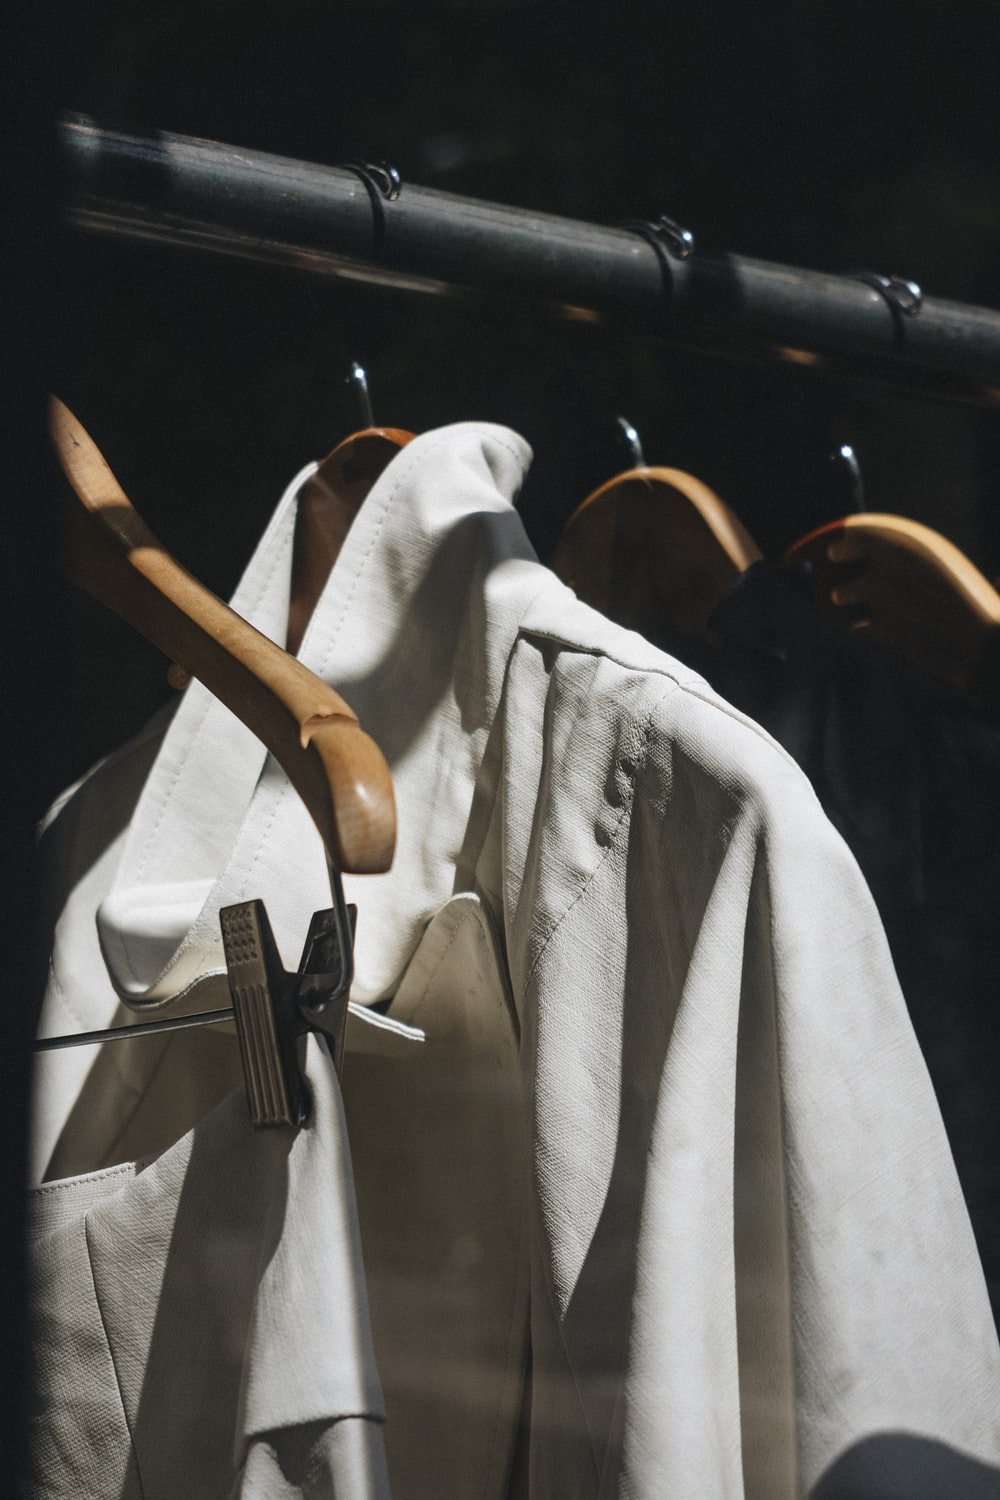 white dress shirt hanged on brown wooden clothes hanger